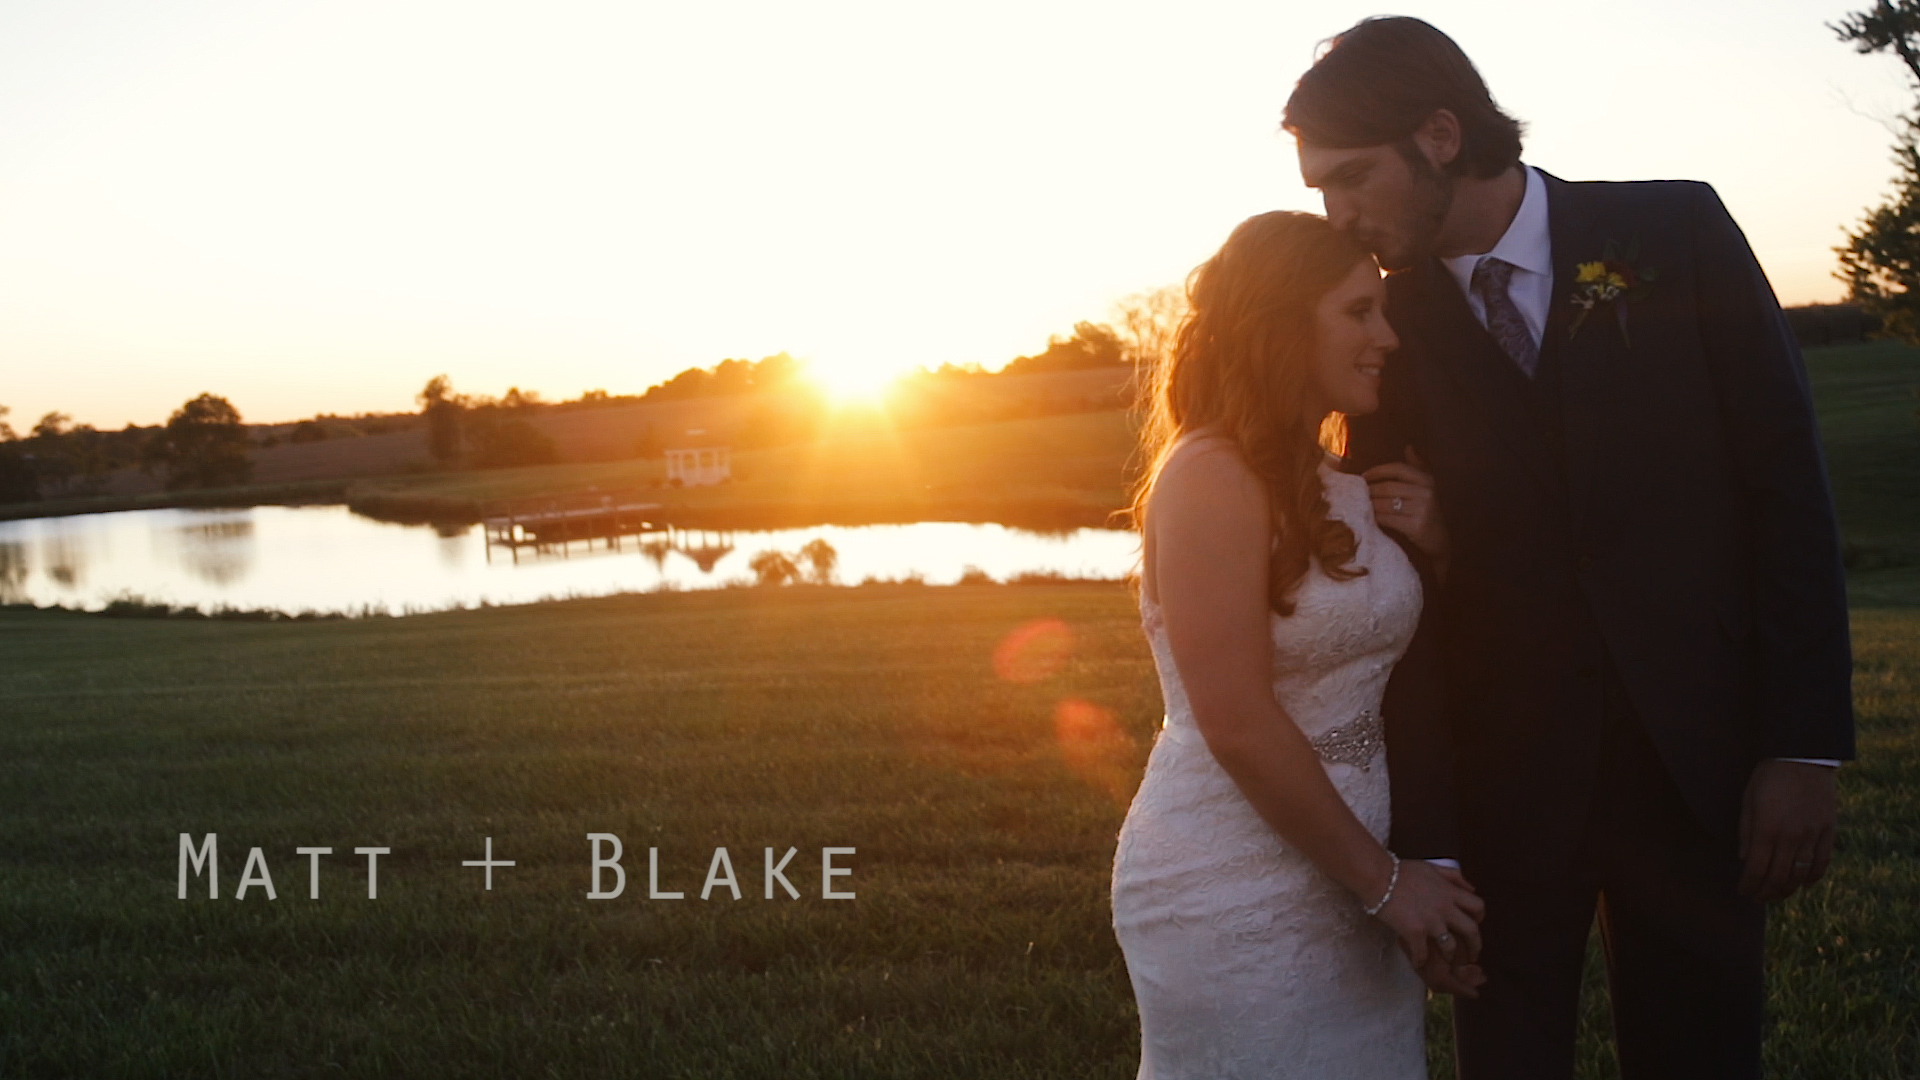 Matt + Blake | Eminence, Kentucky | Old Blue Ribbon Farm